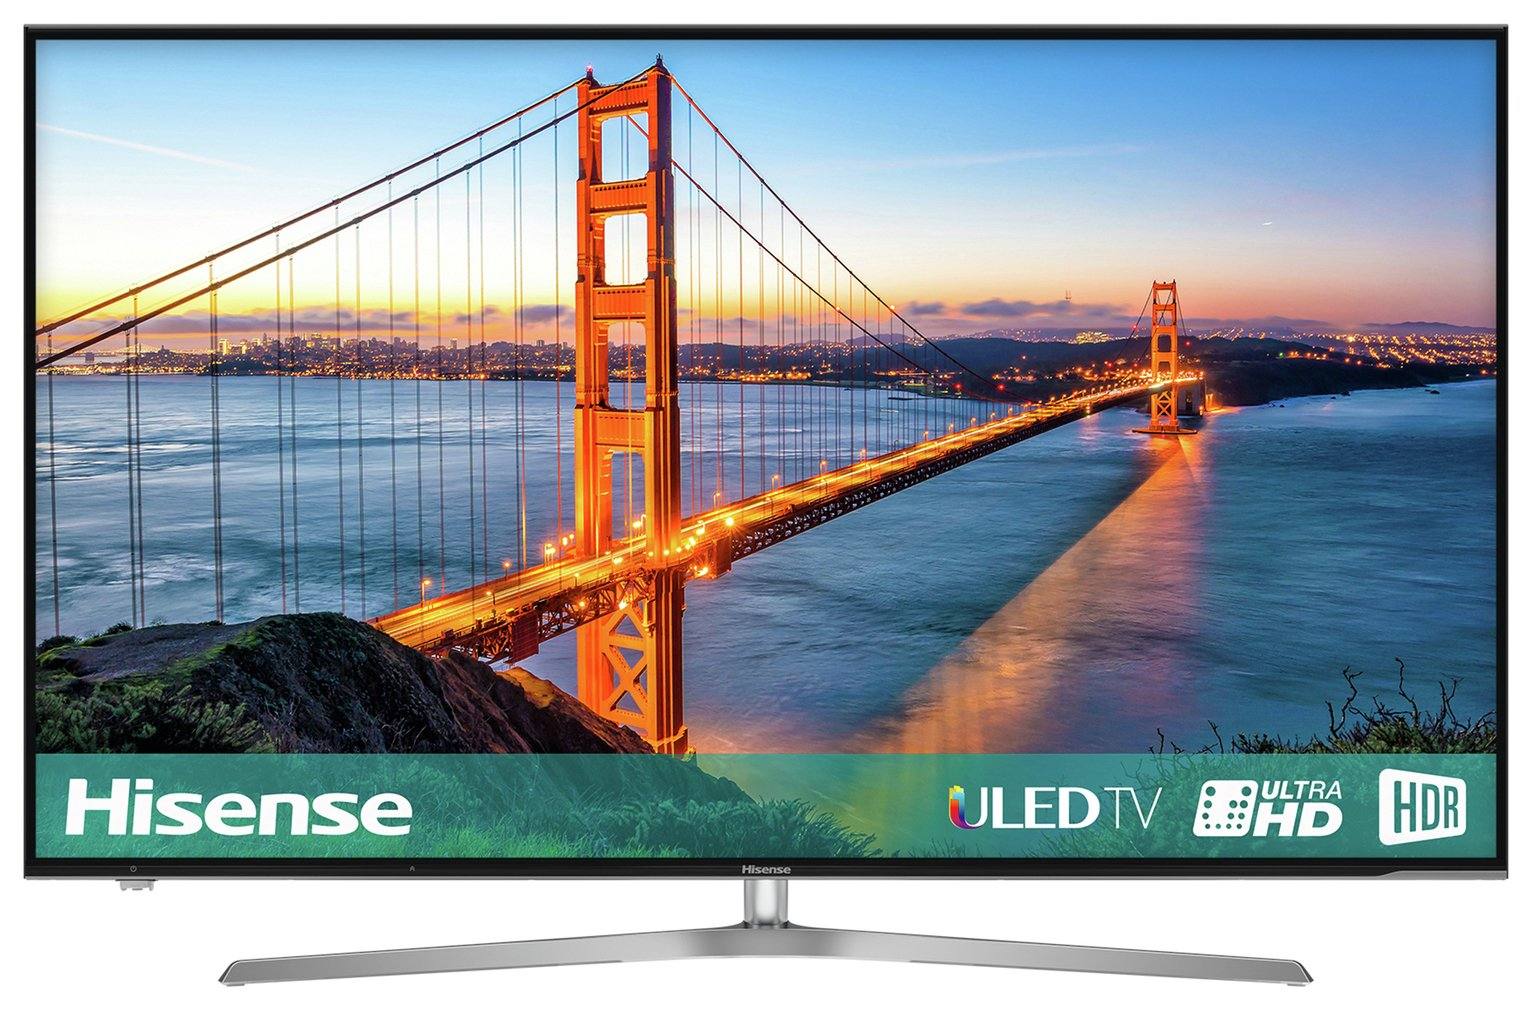 Hisense Hisense 65 Inch 65U7AUK Smart 4K UHD TV with HDR